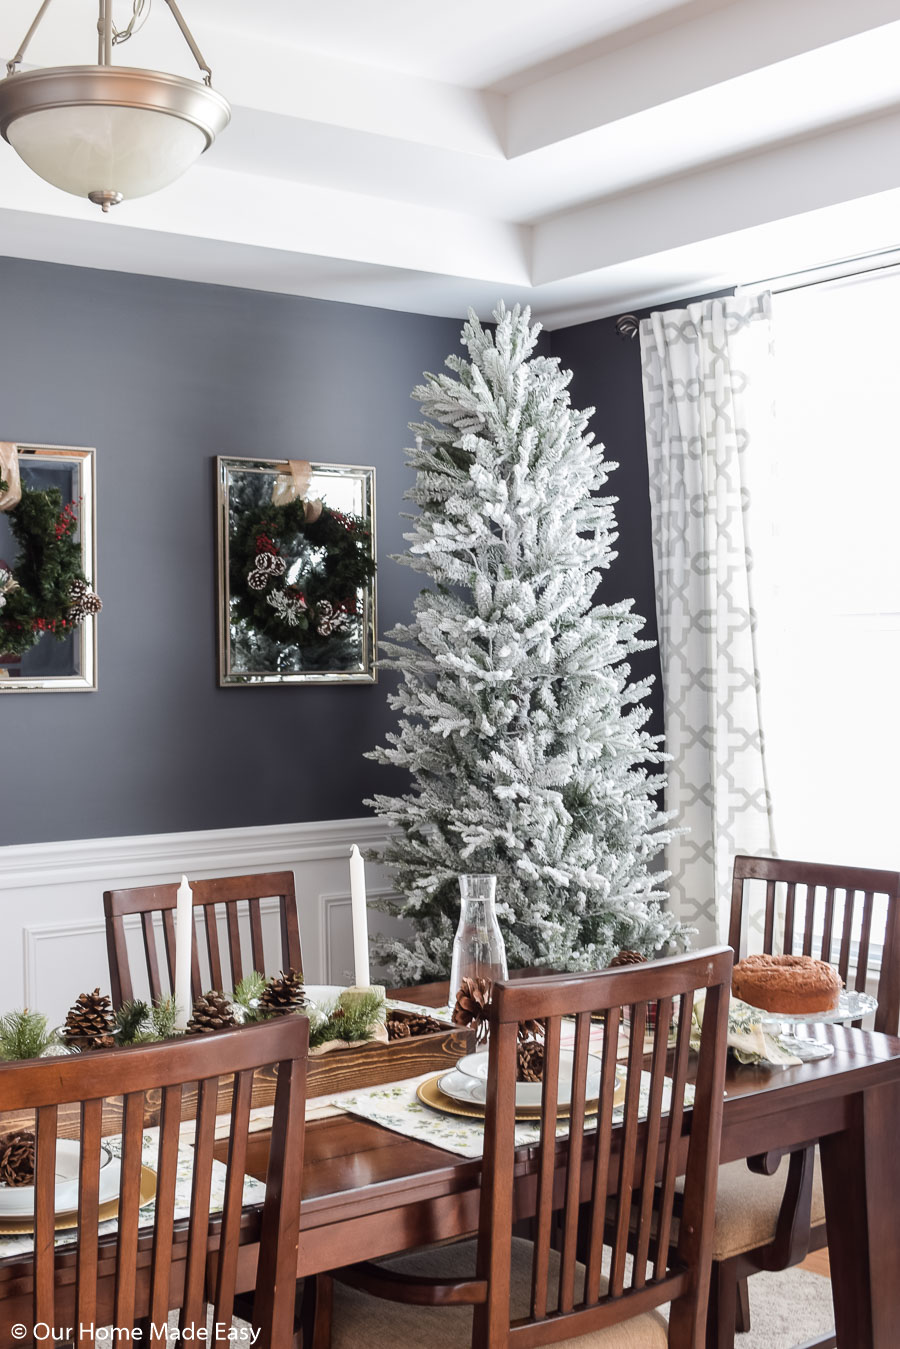 Our Christmas dining room is simple and clean. We love our white frosted branch Christmas tree!